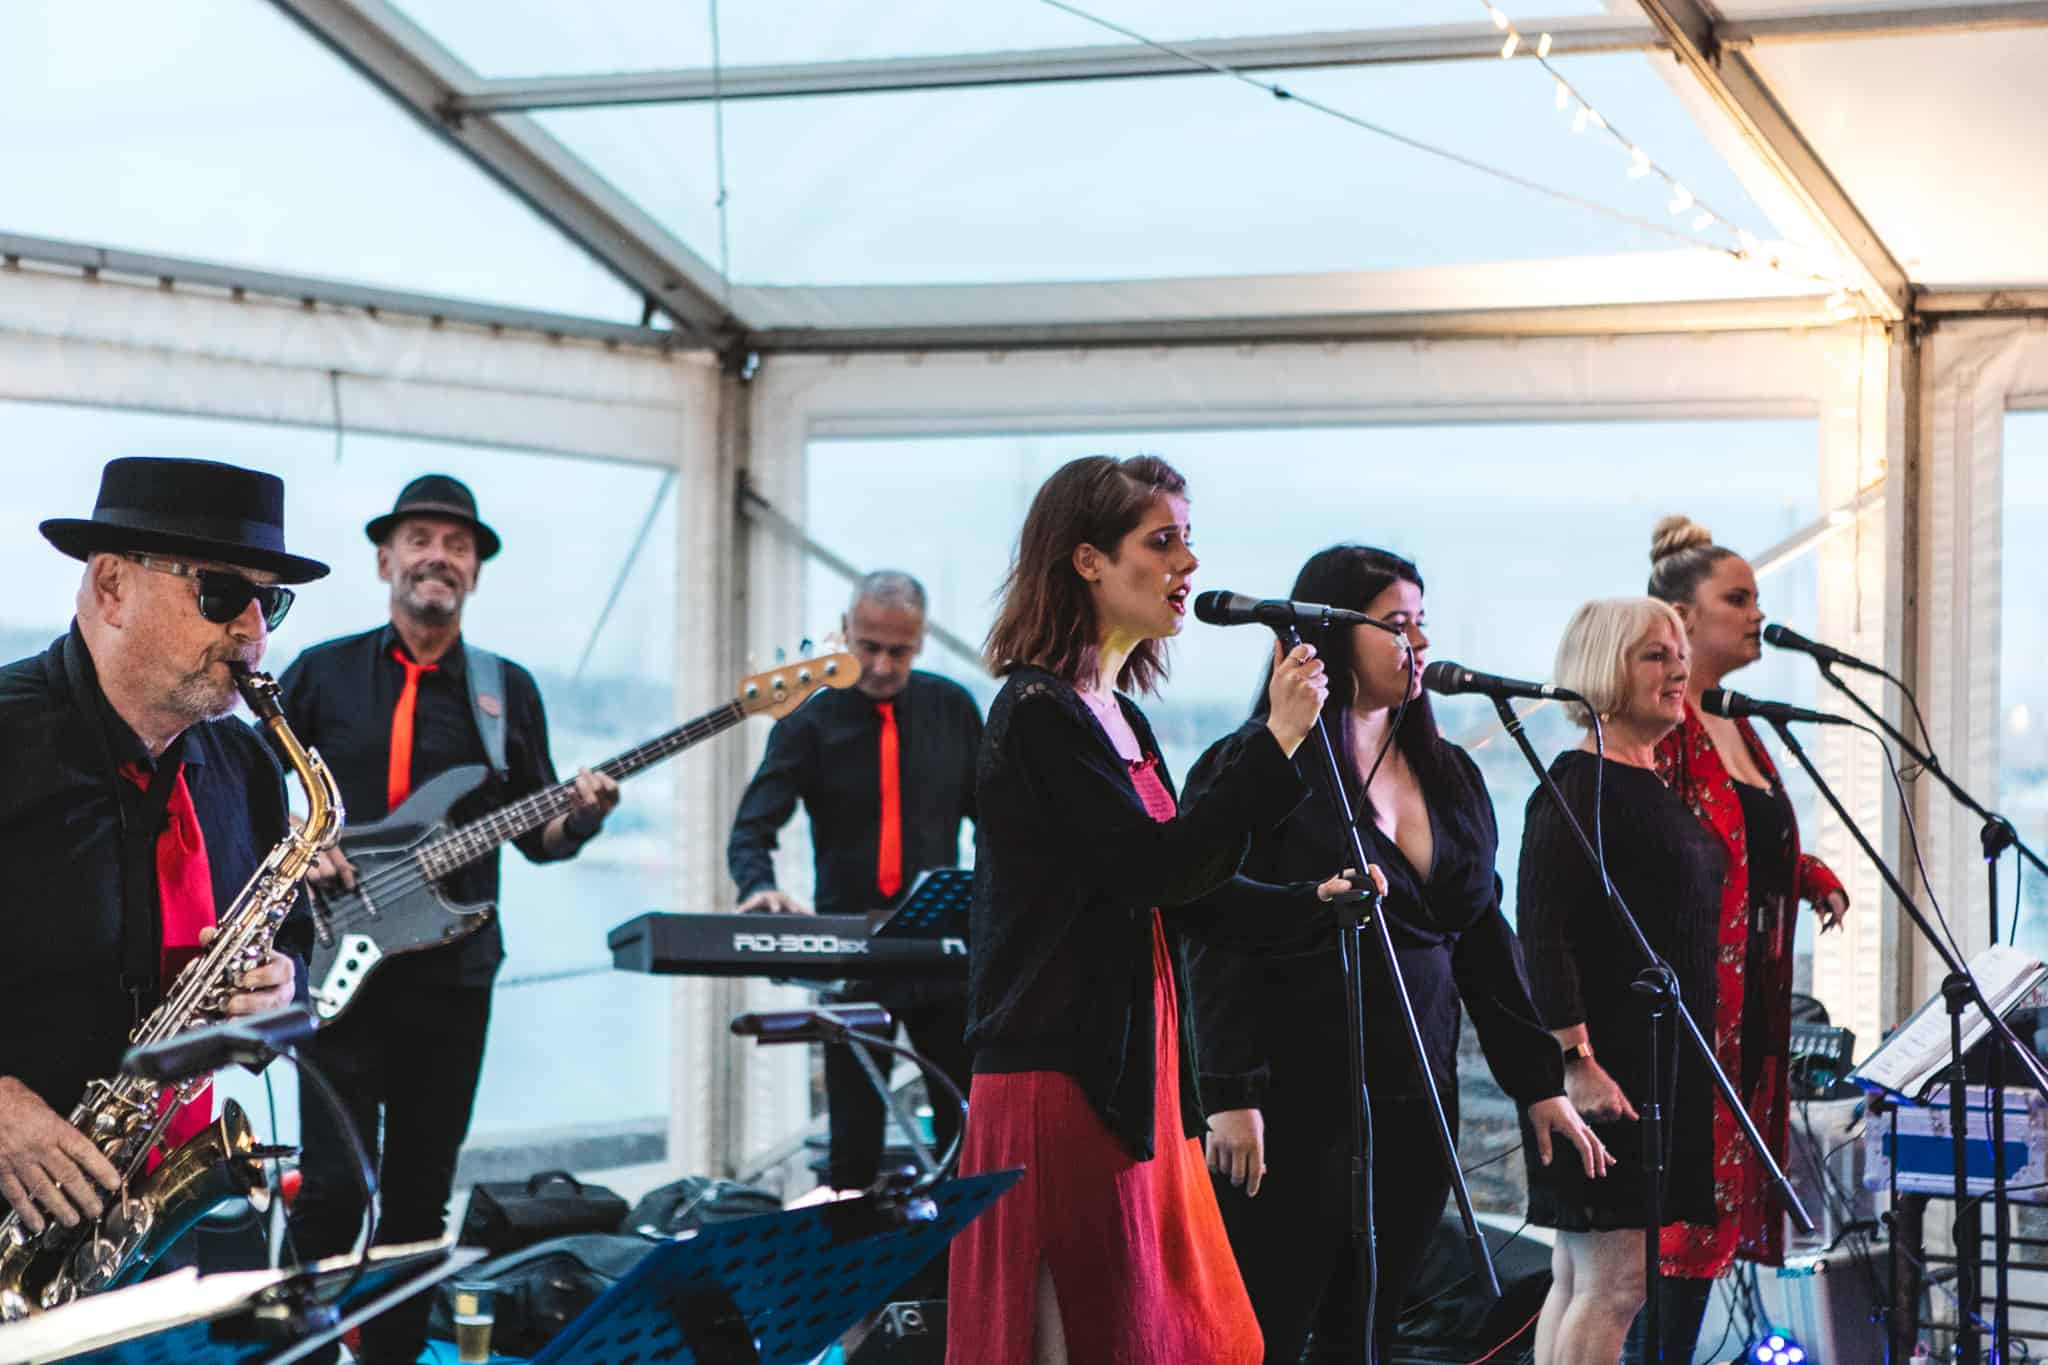 falmouth-week-at-the-working-boat-pub-live-music-events-falmouth-cornwall (33 of 114)